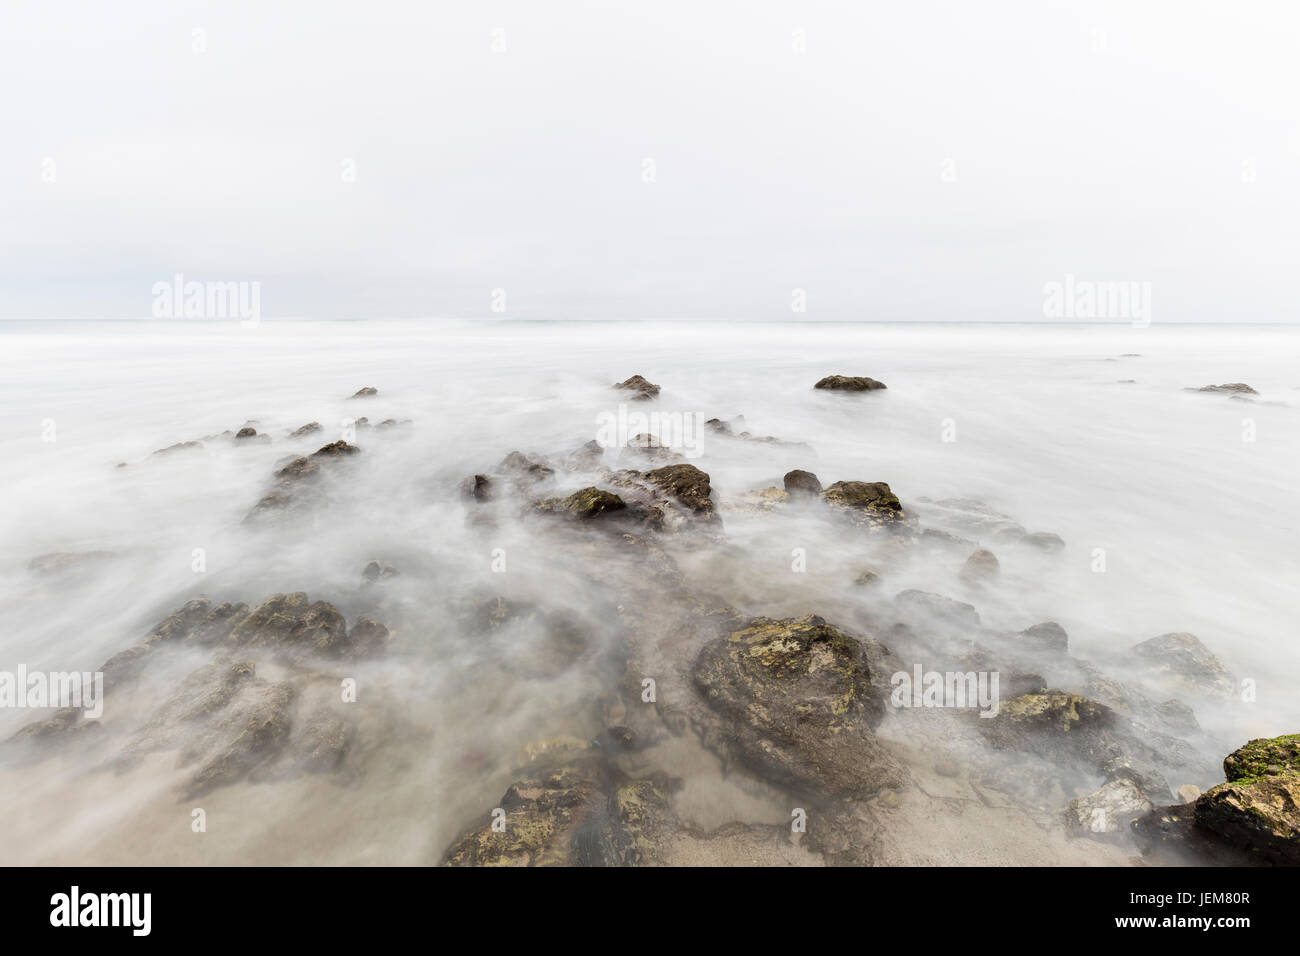 Foggy pacific ocean tidal pool with motion blur at Point Dume in Malibu California. - Stock Image